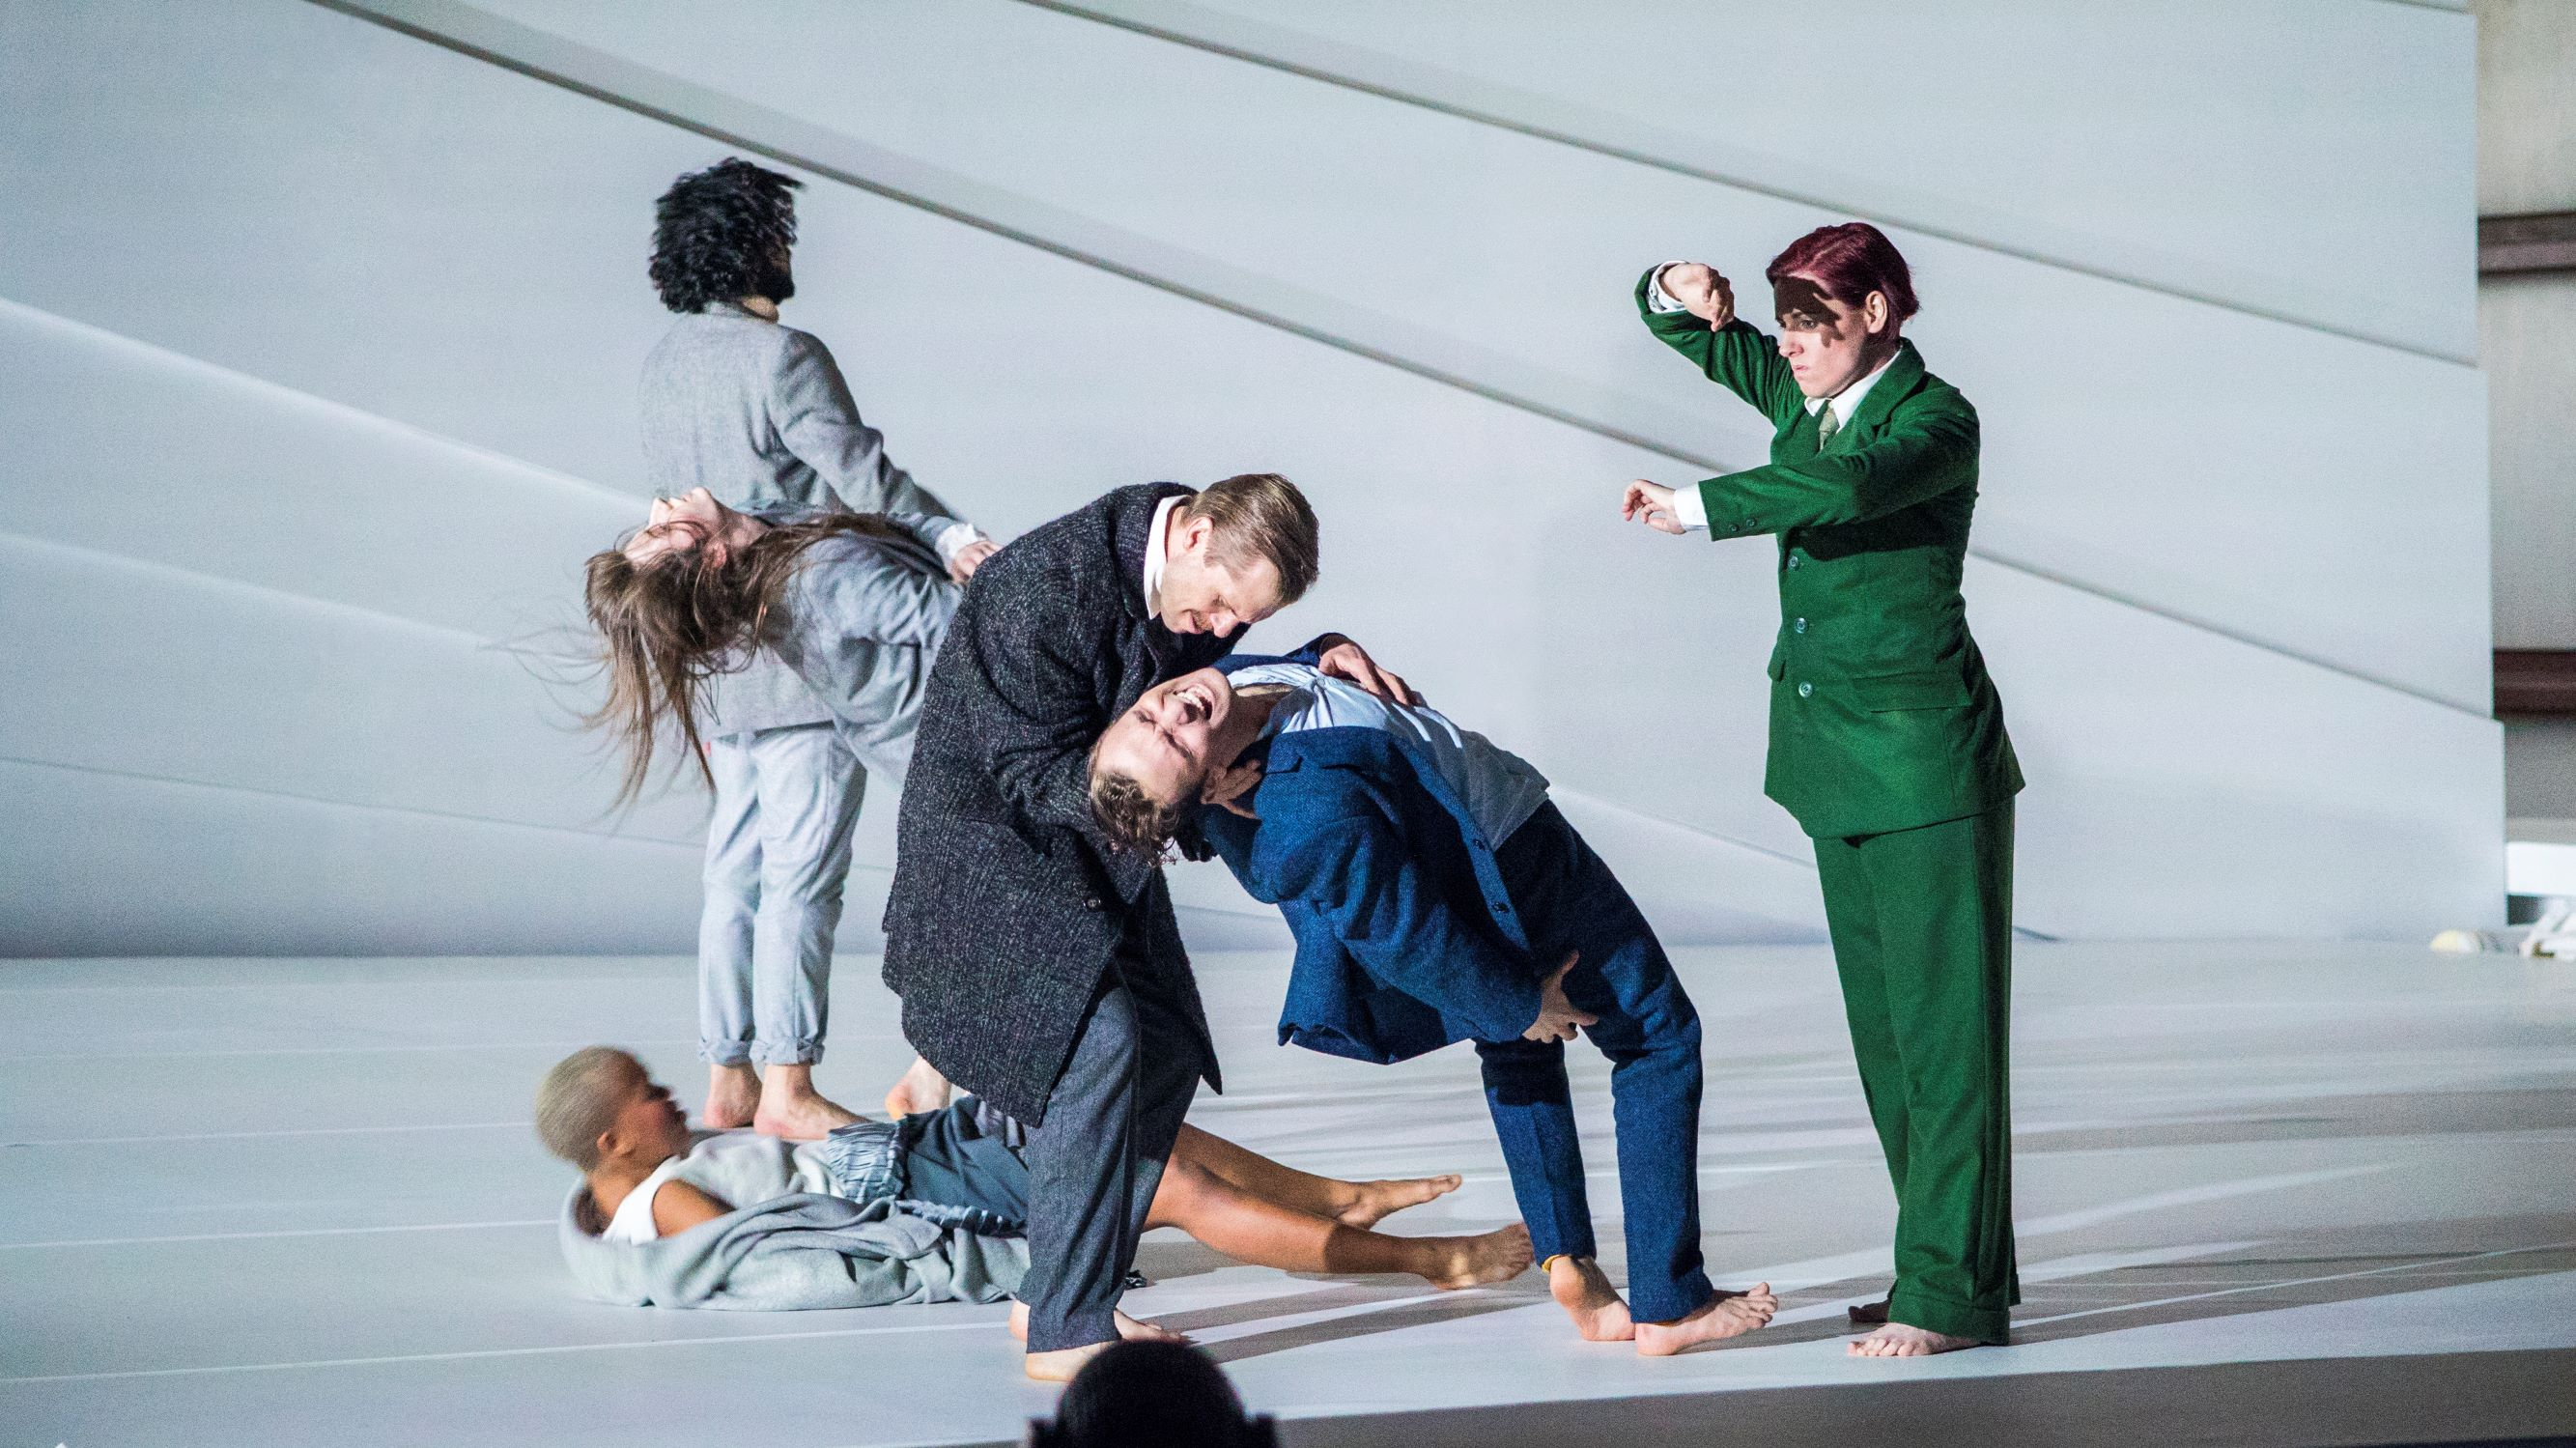 six people on a white stage. A man is falling and another man is catching him.